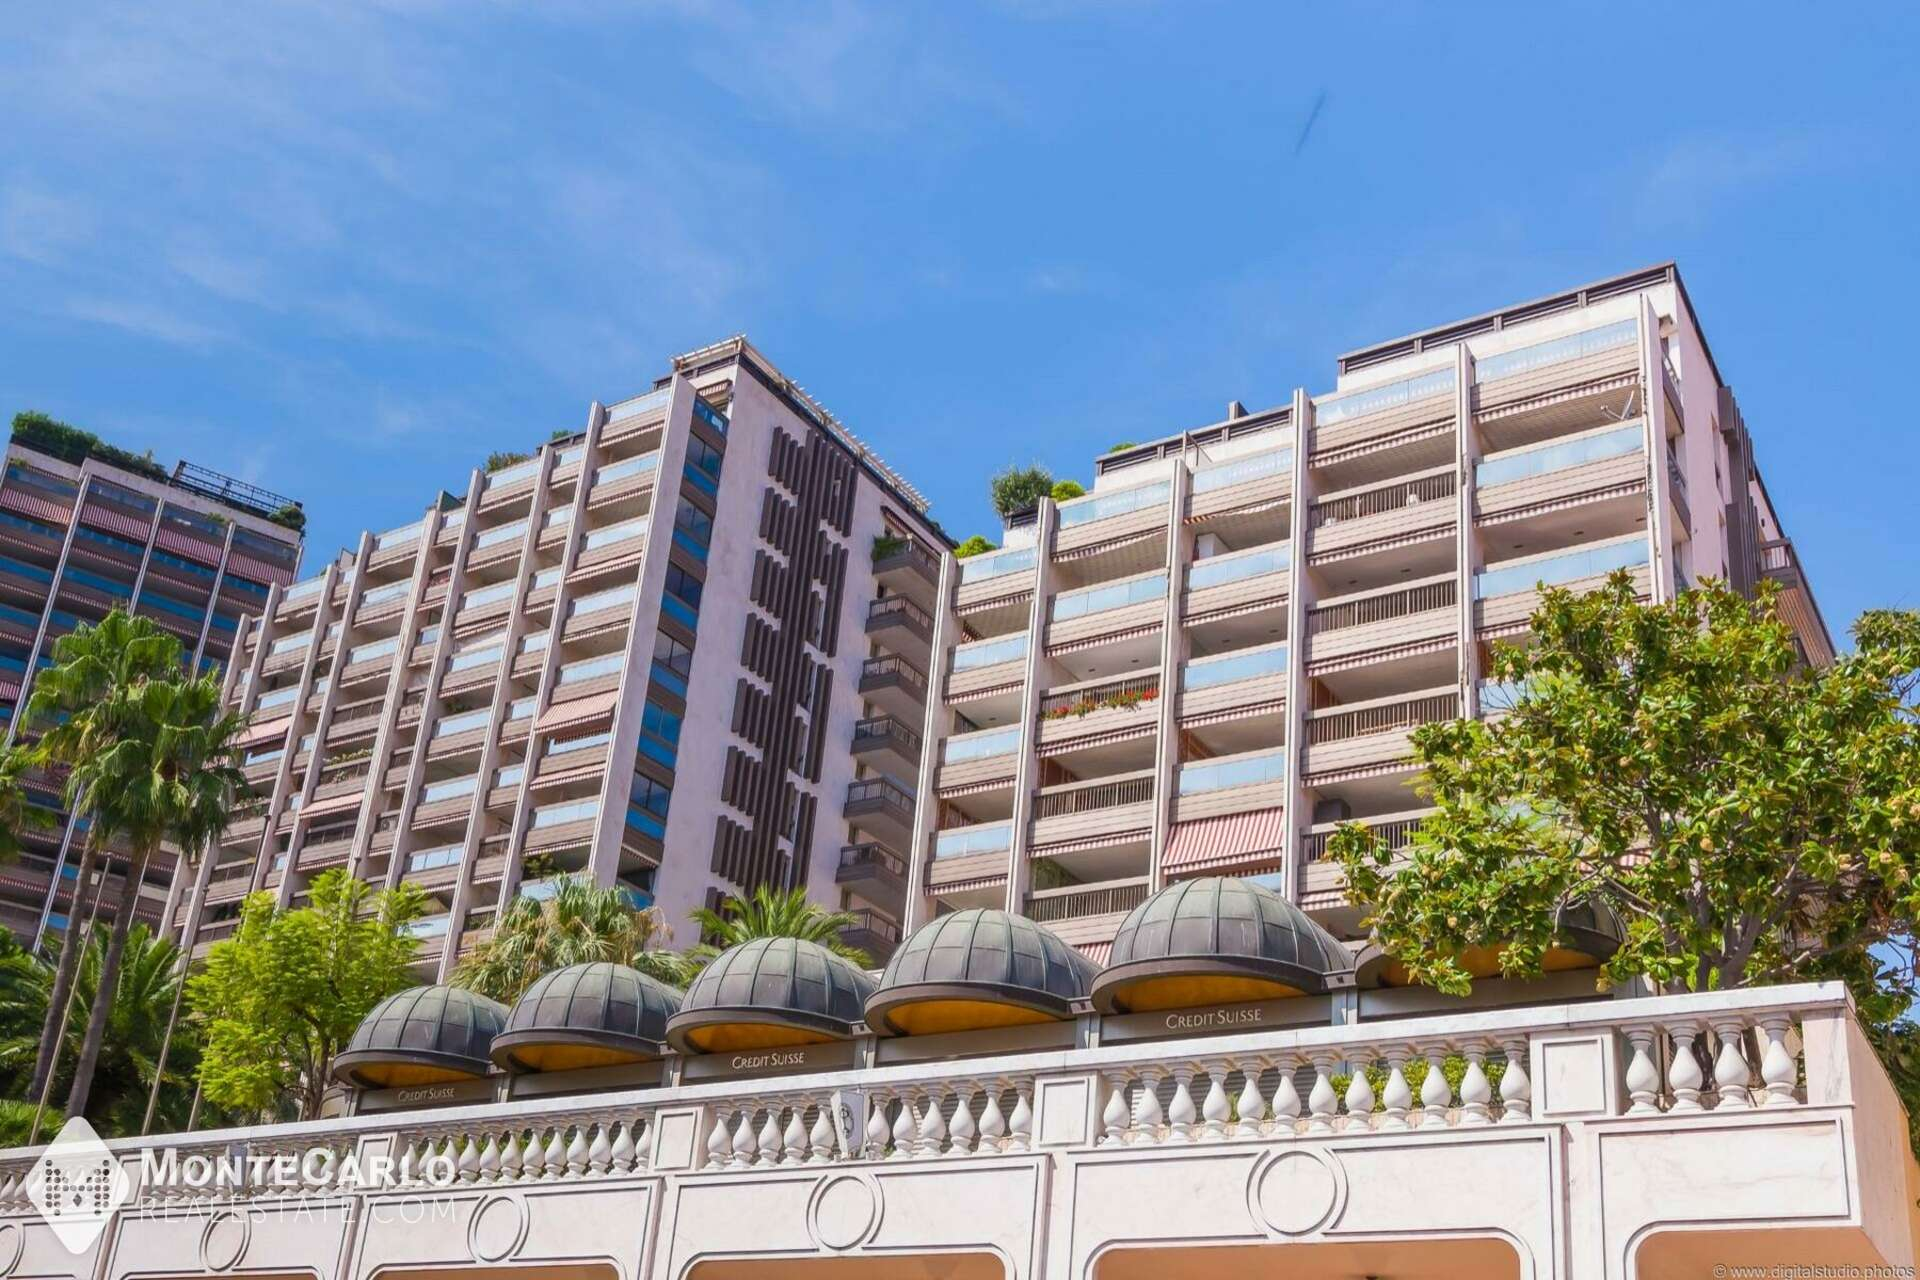 For sale Park Palace - Apartment / Studio : 3 500 000 € | Monte-Carlo Real Estate [517V15695A]